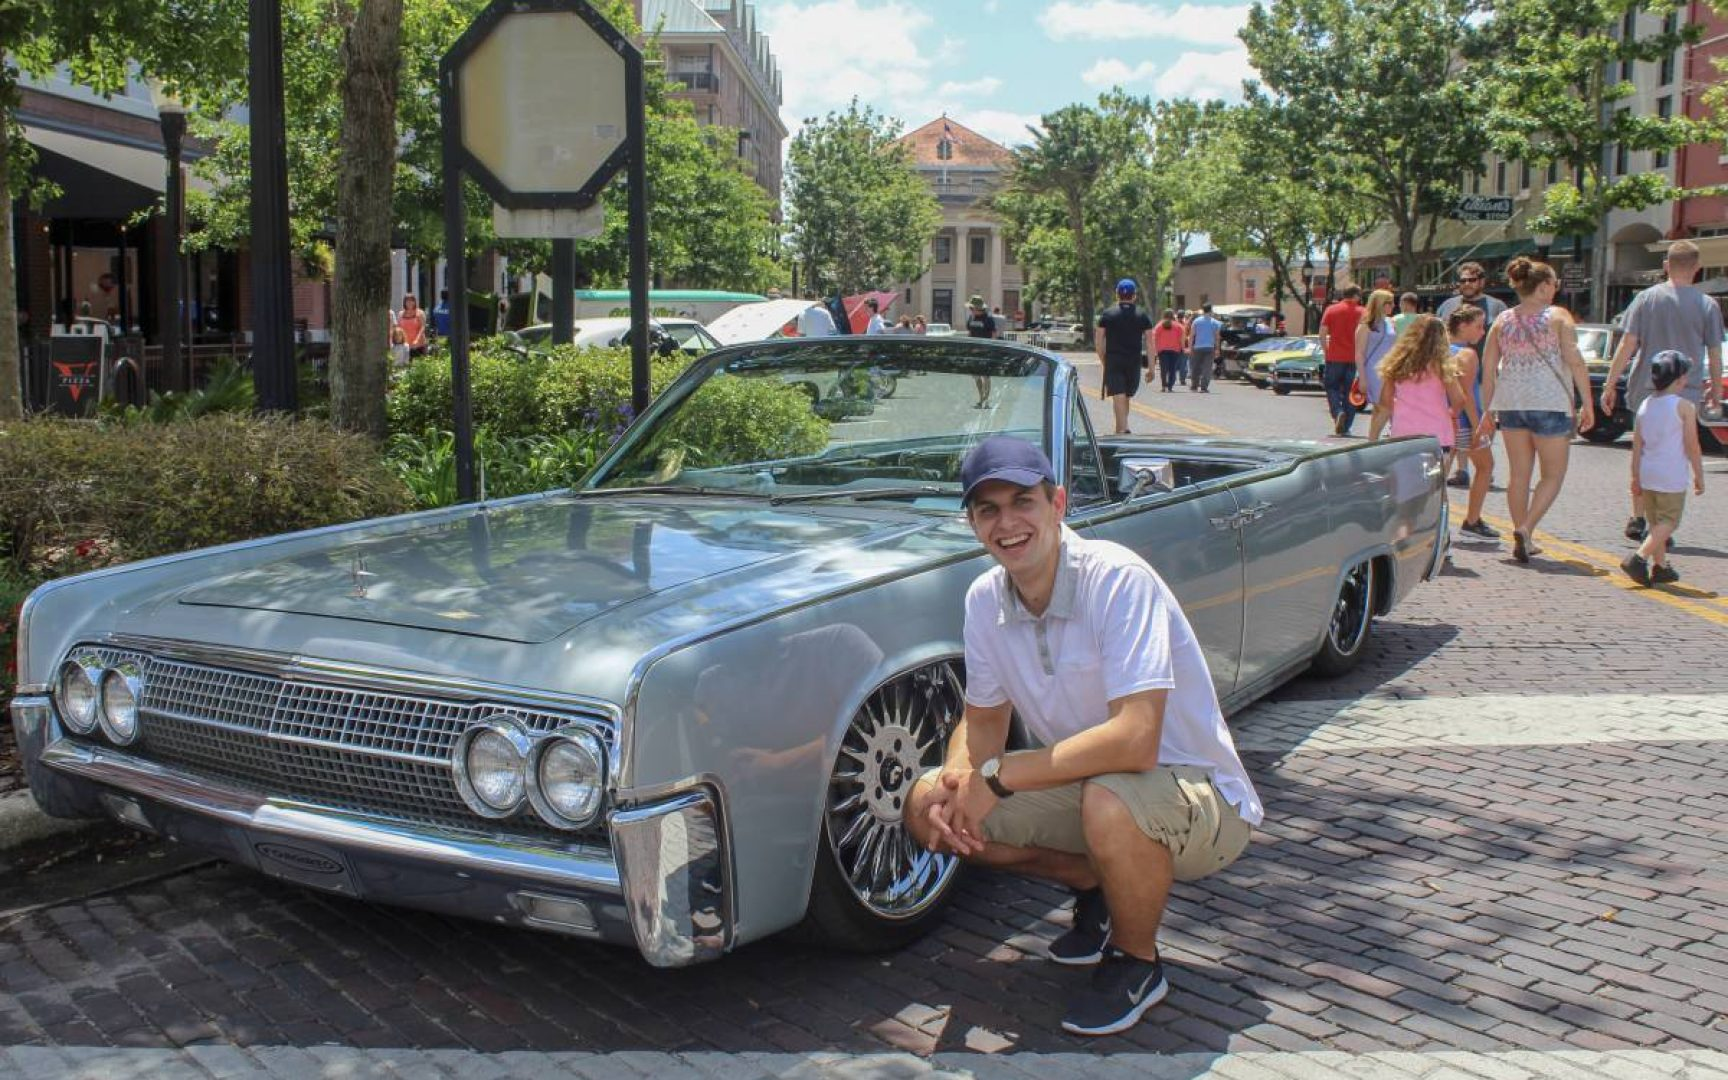 Michael Cizek poses with a classic car